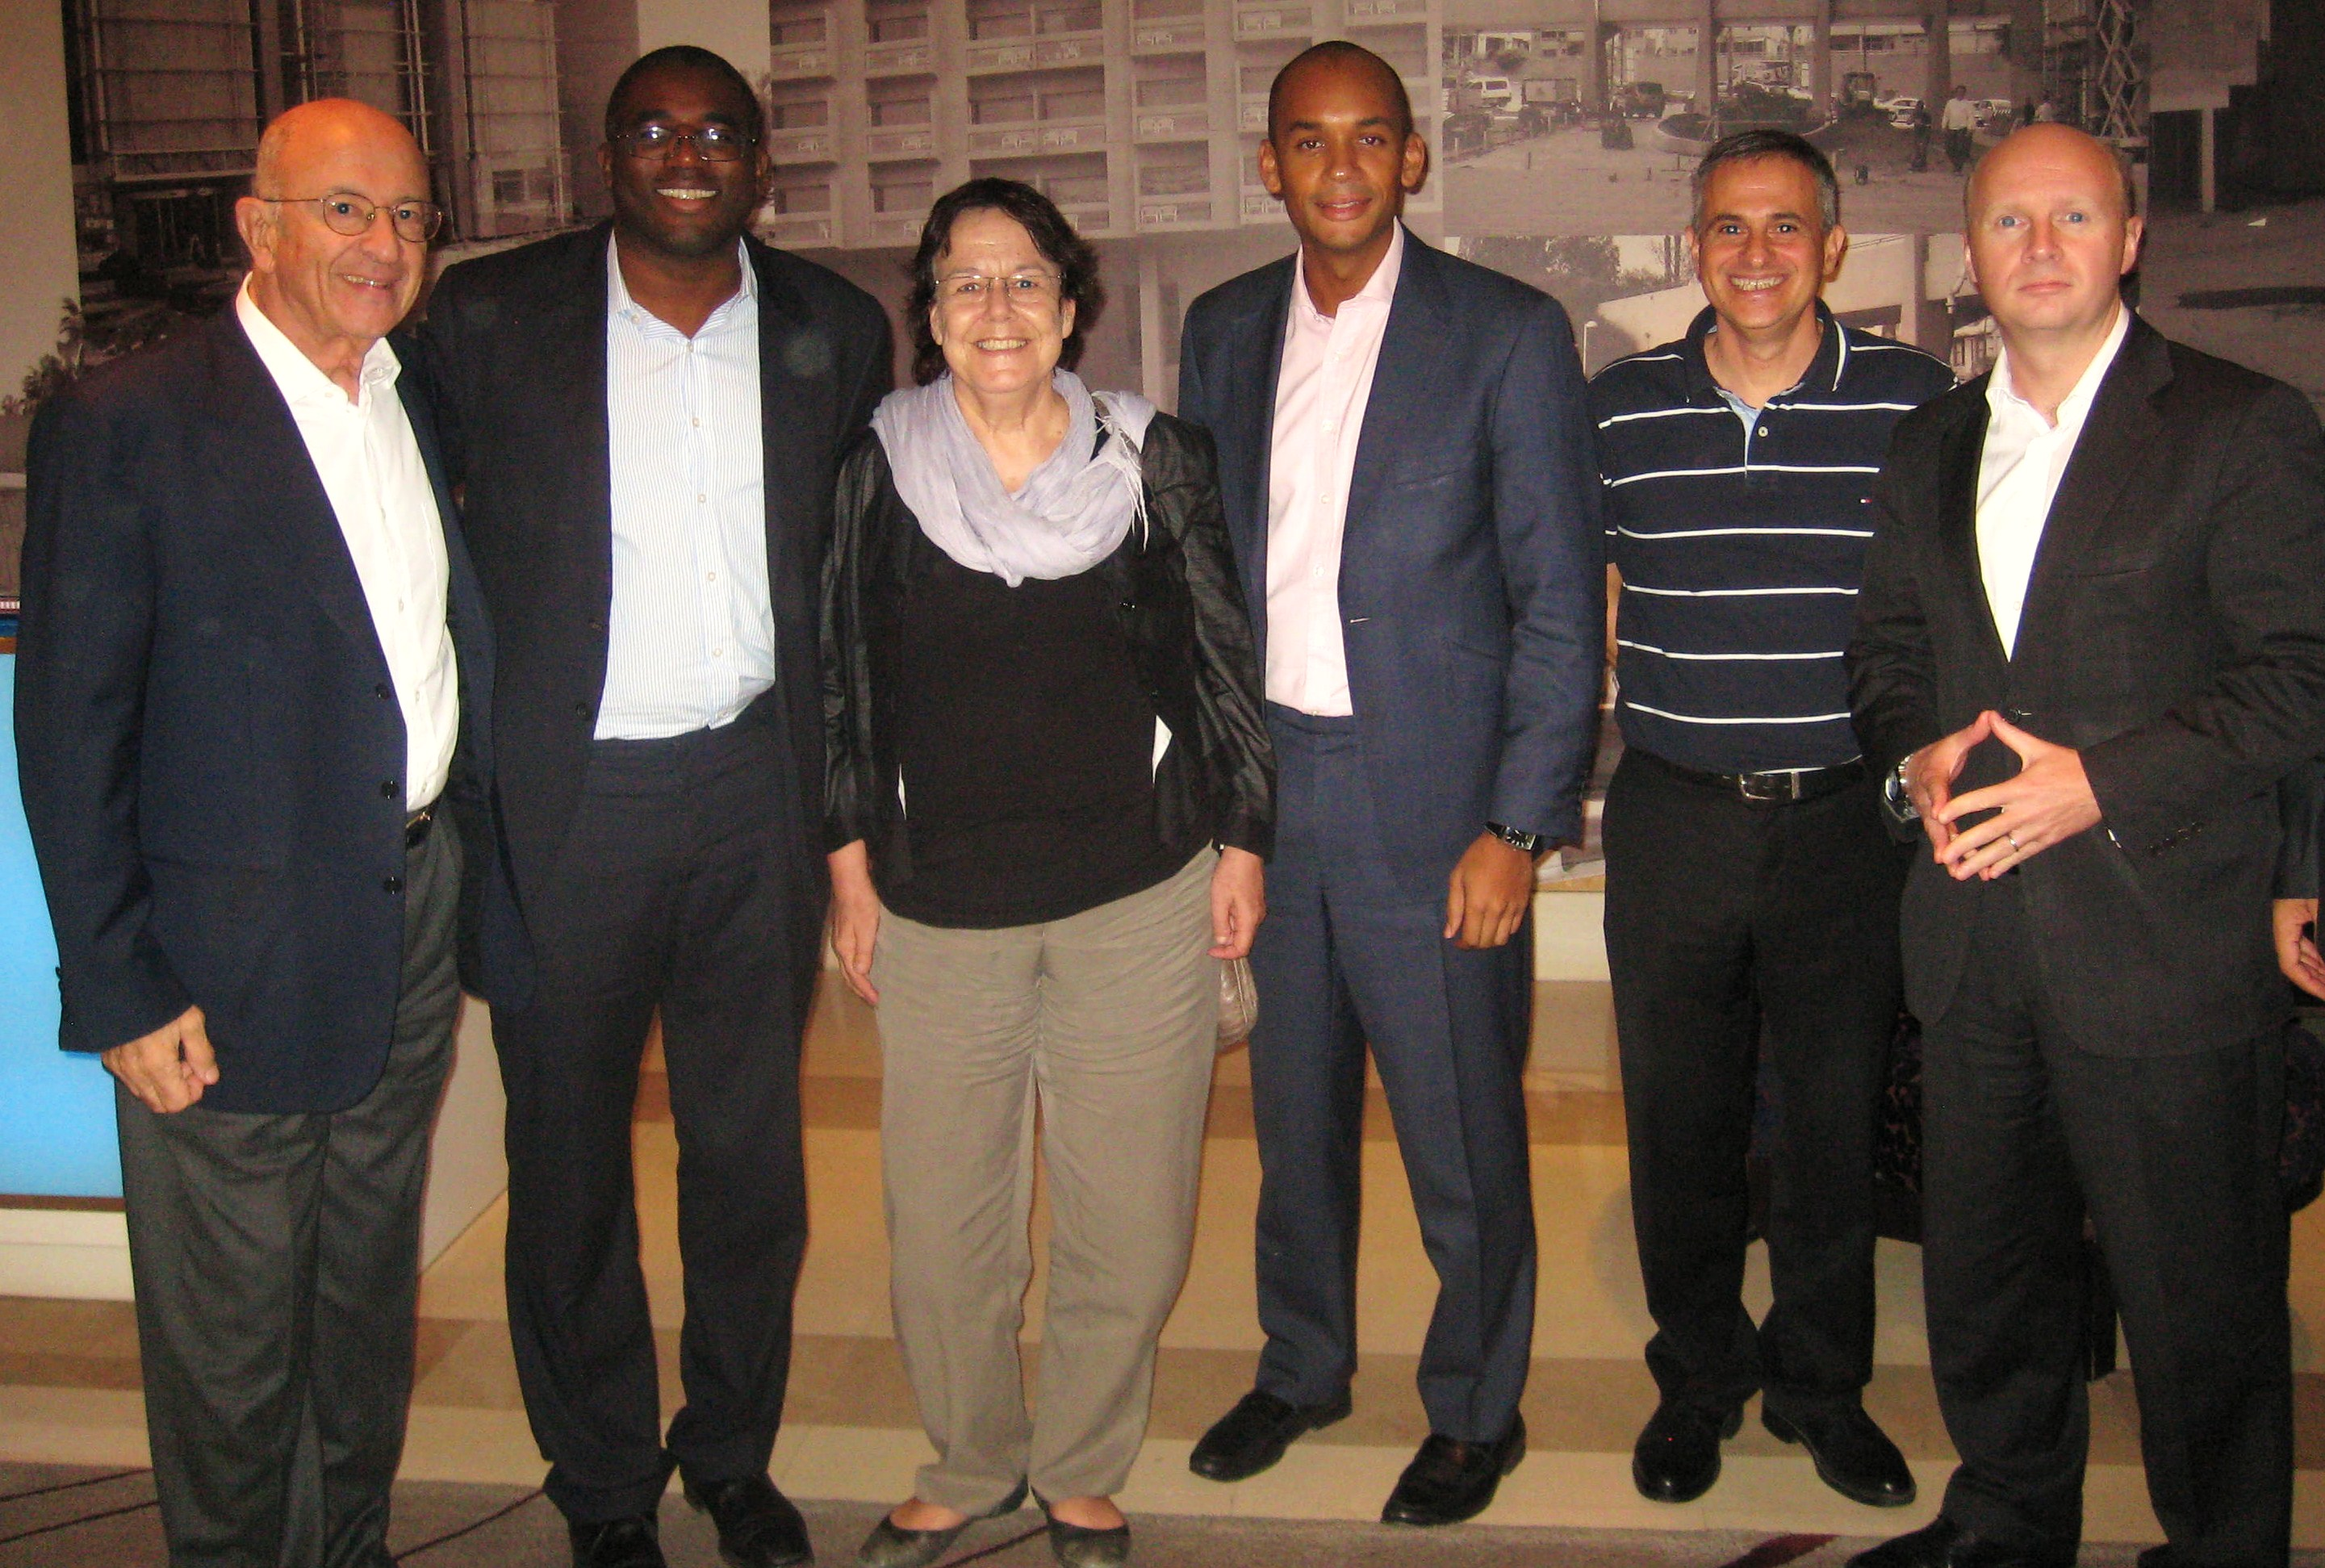 Liam Byrne, Chuka Ummuna, David Lammy and Sir Trevor Chinn with Smadar Nehab of Israel'sTsofen NGO and Jimmy Levy of Galil Software